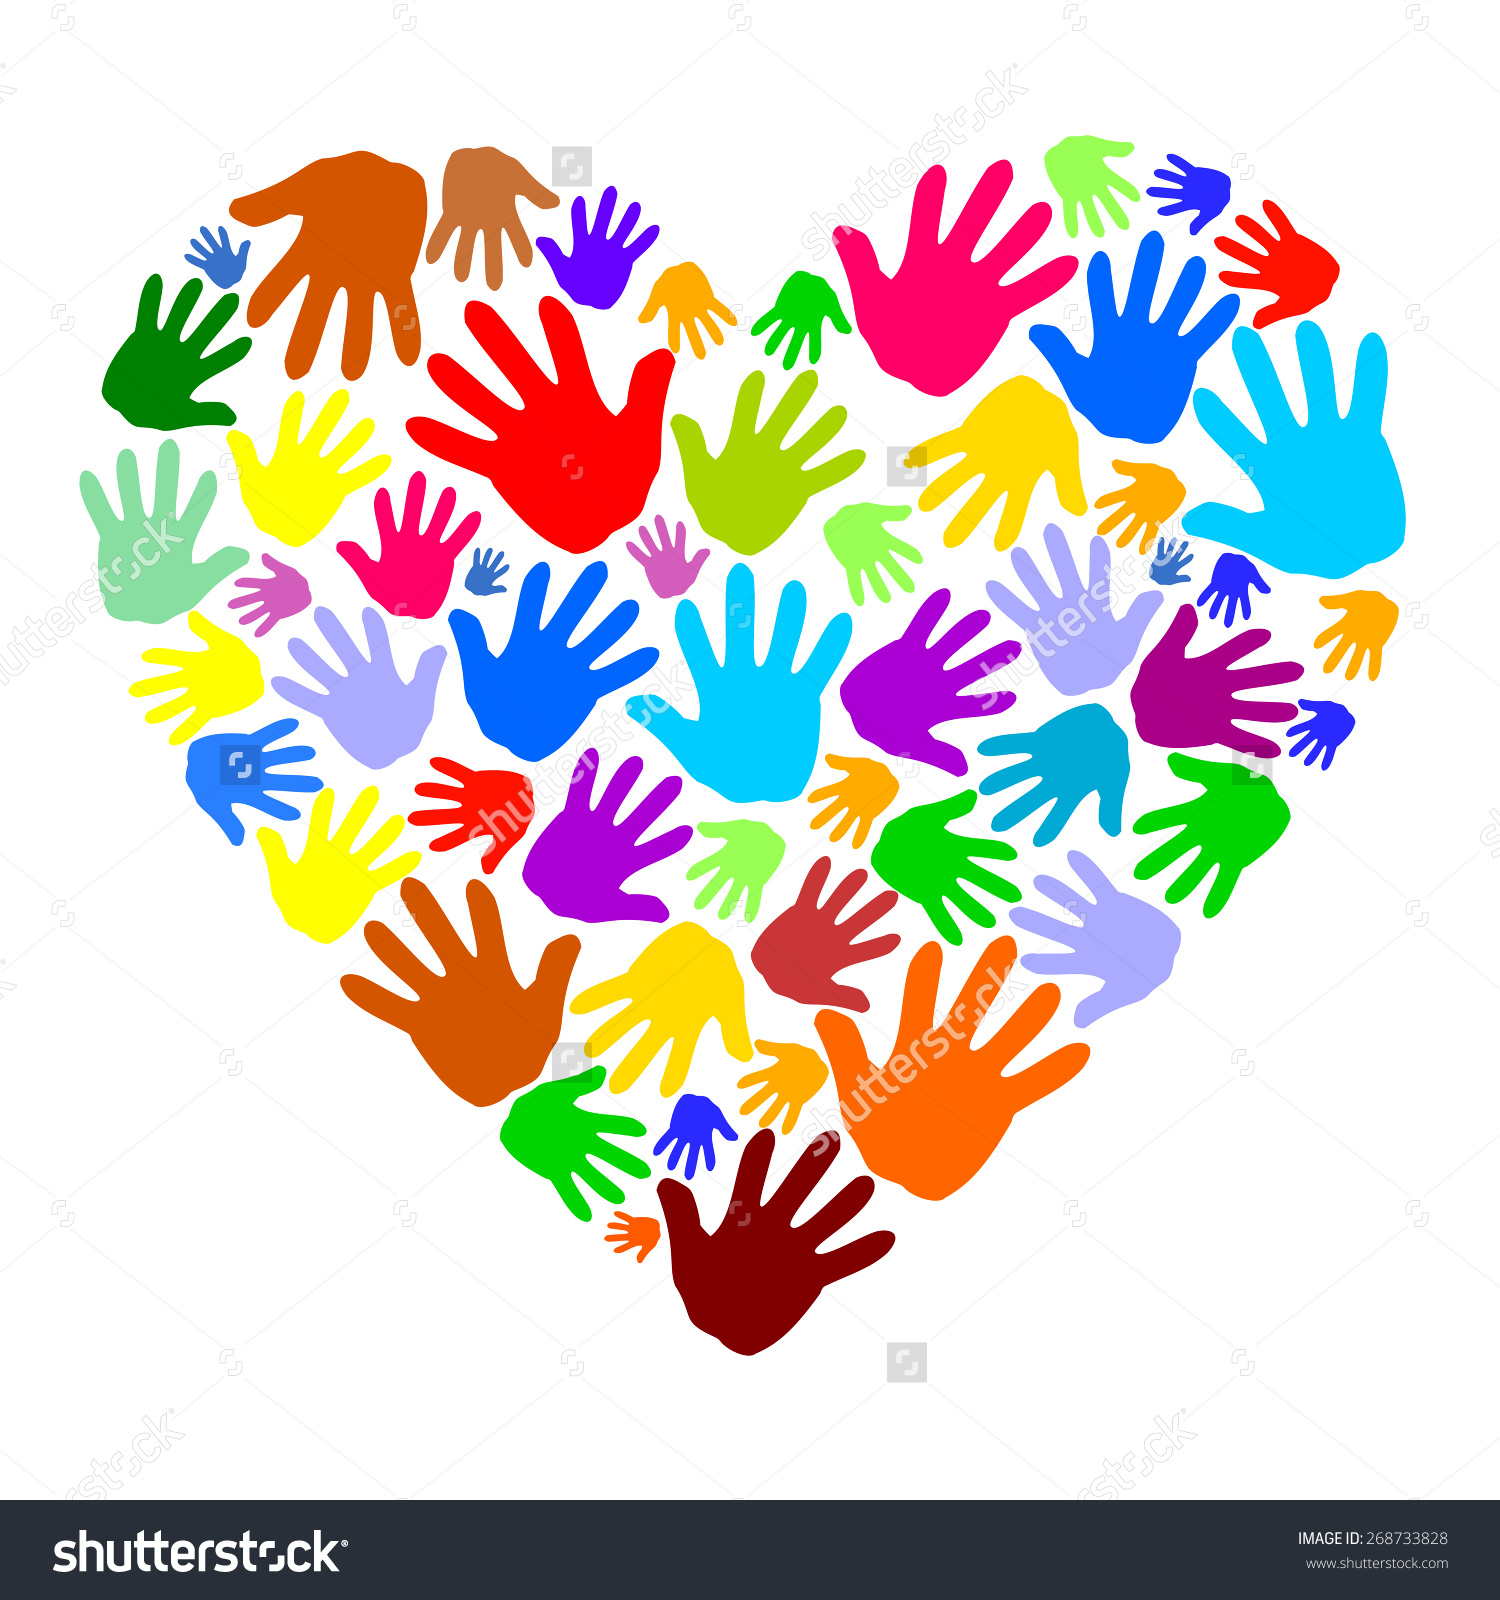 Abstract Colored Heart Shape Human Hand Stock Vector 268733828.